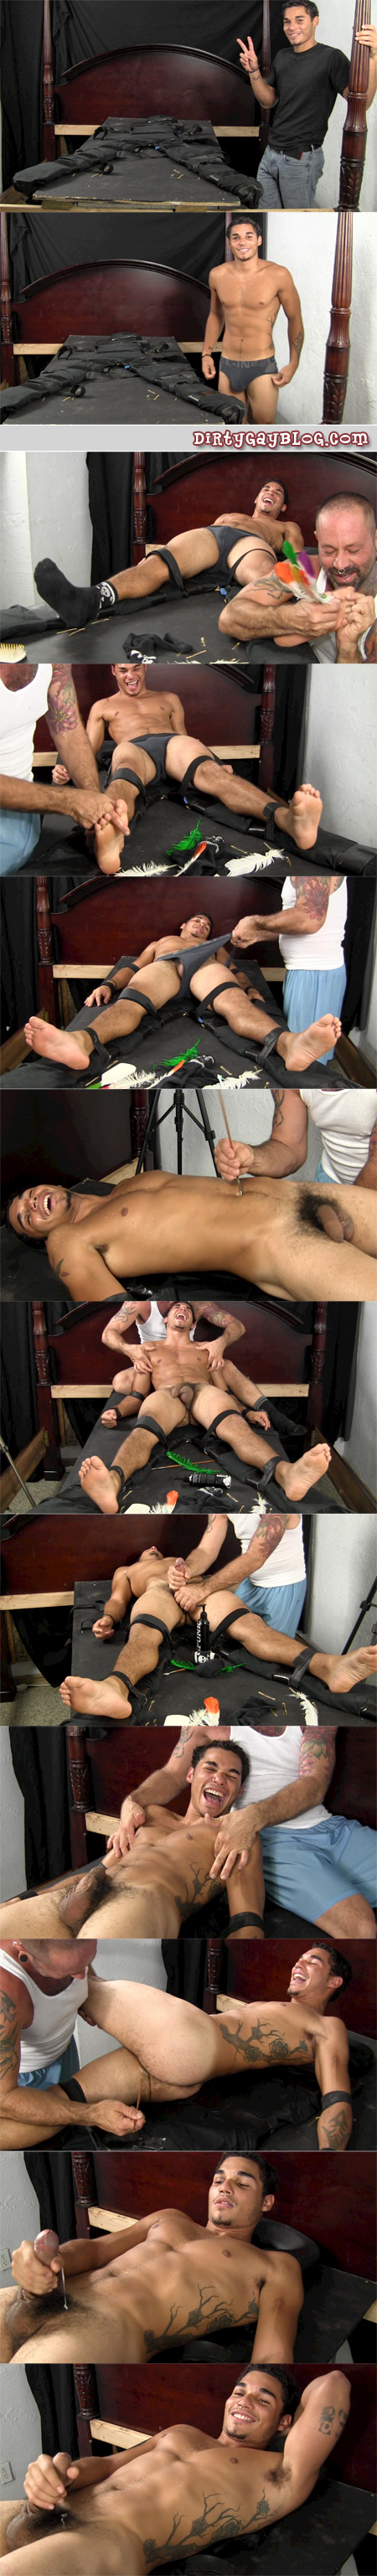 Sweet young Asian and Latino mixed race guy is bound and tickled mercilessly.